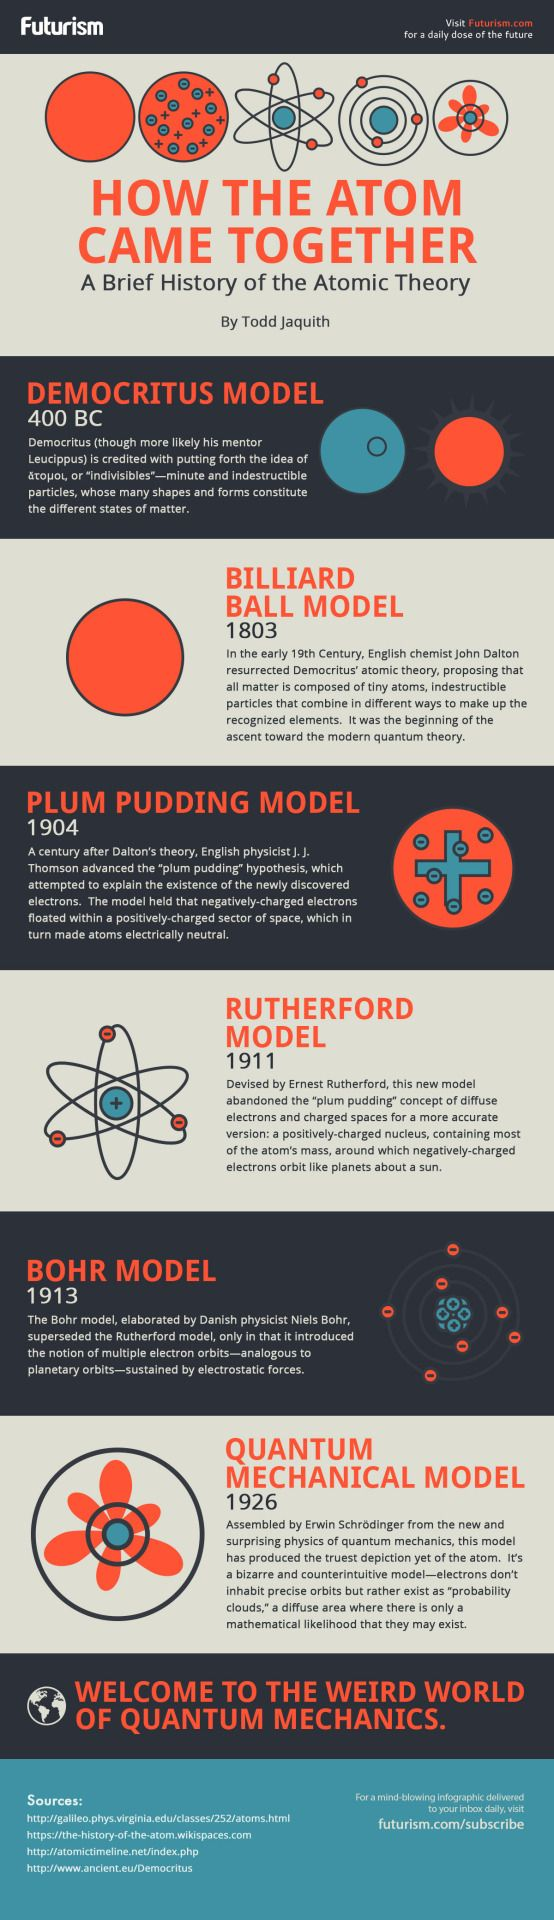 History of atomic theory. Infographic.